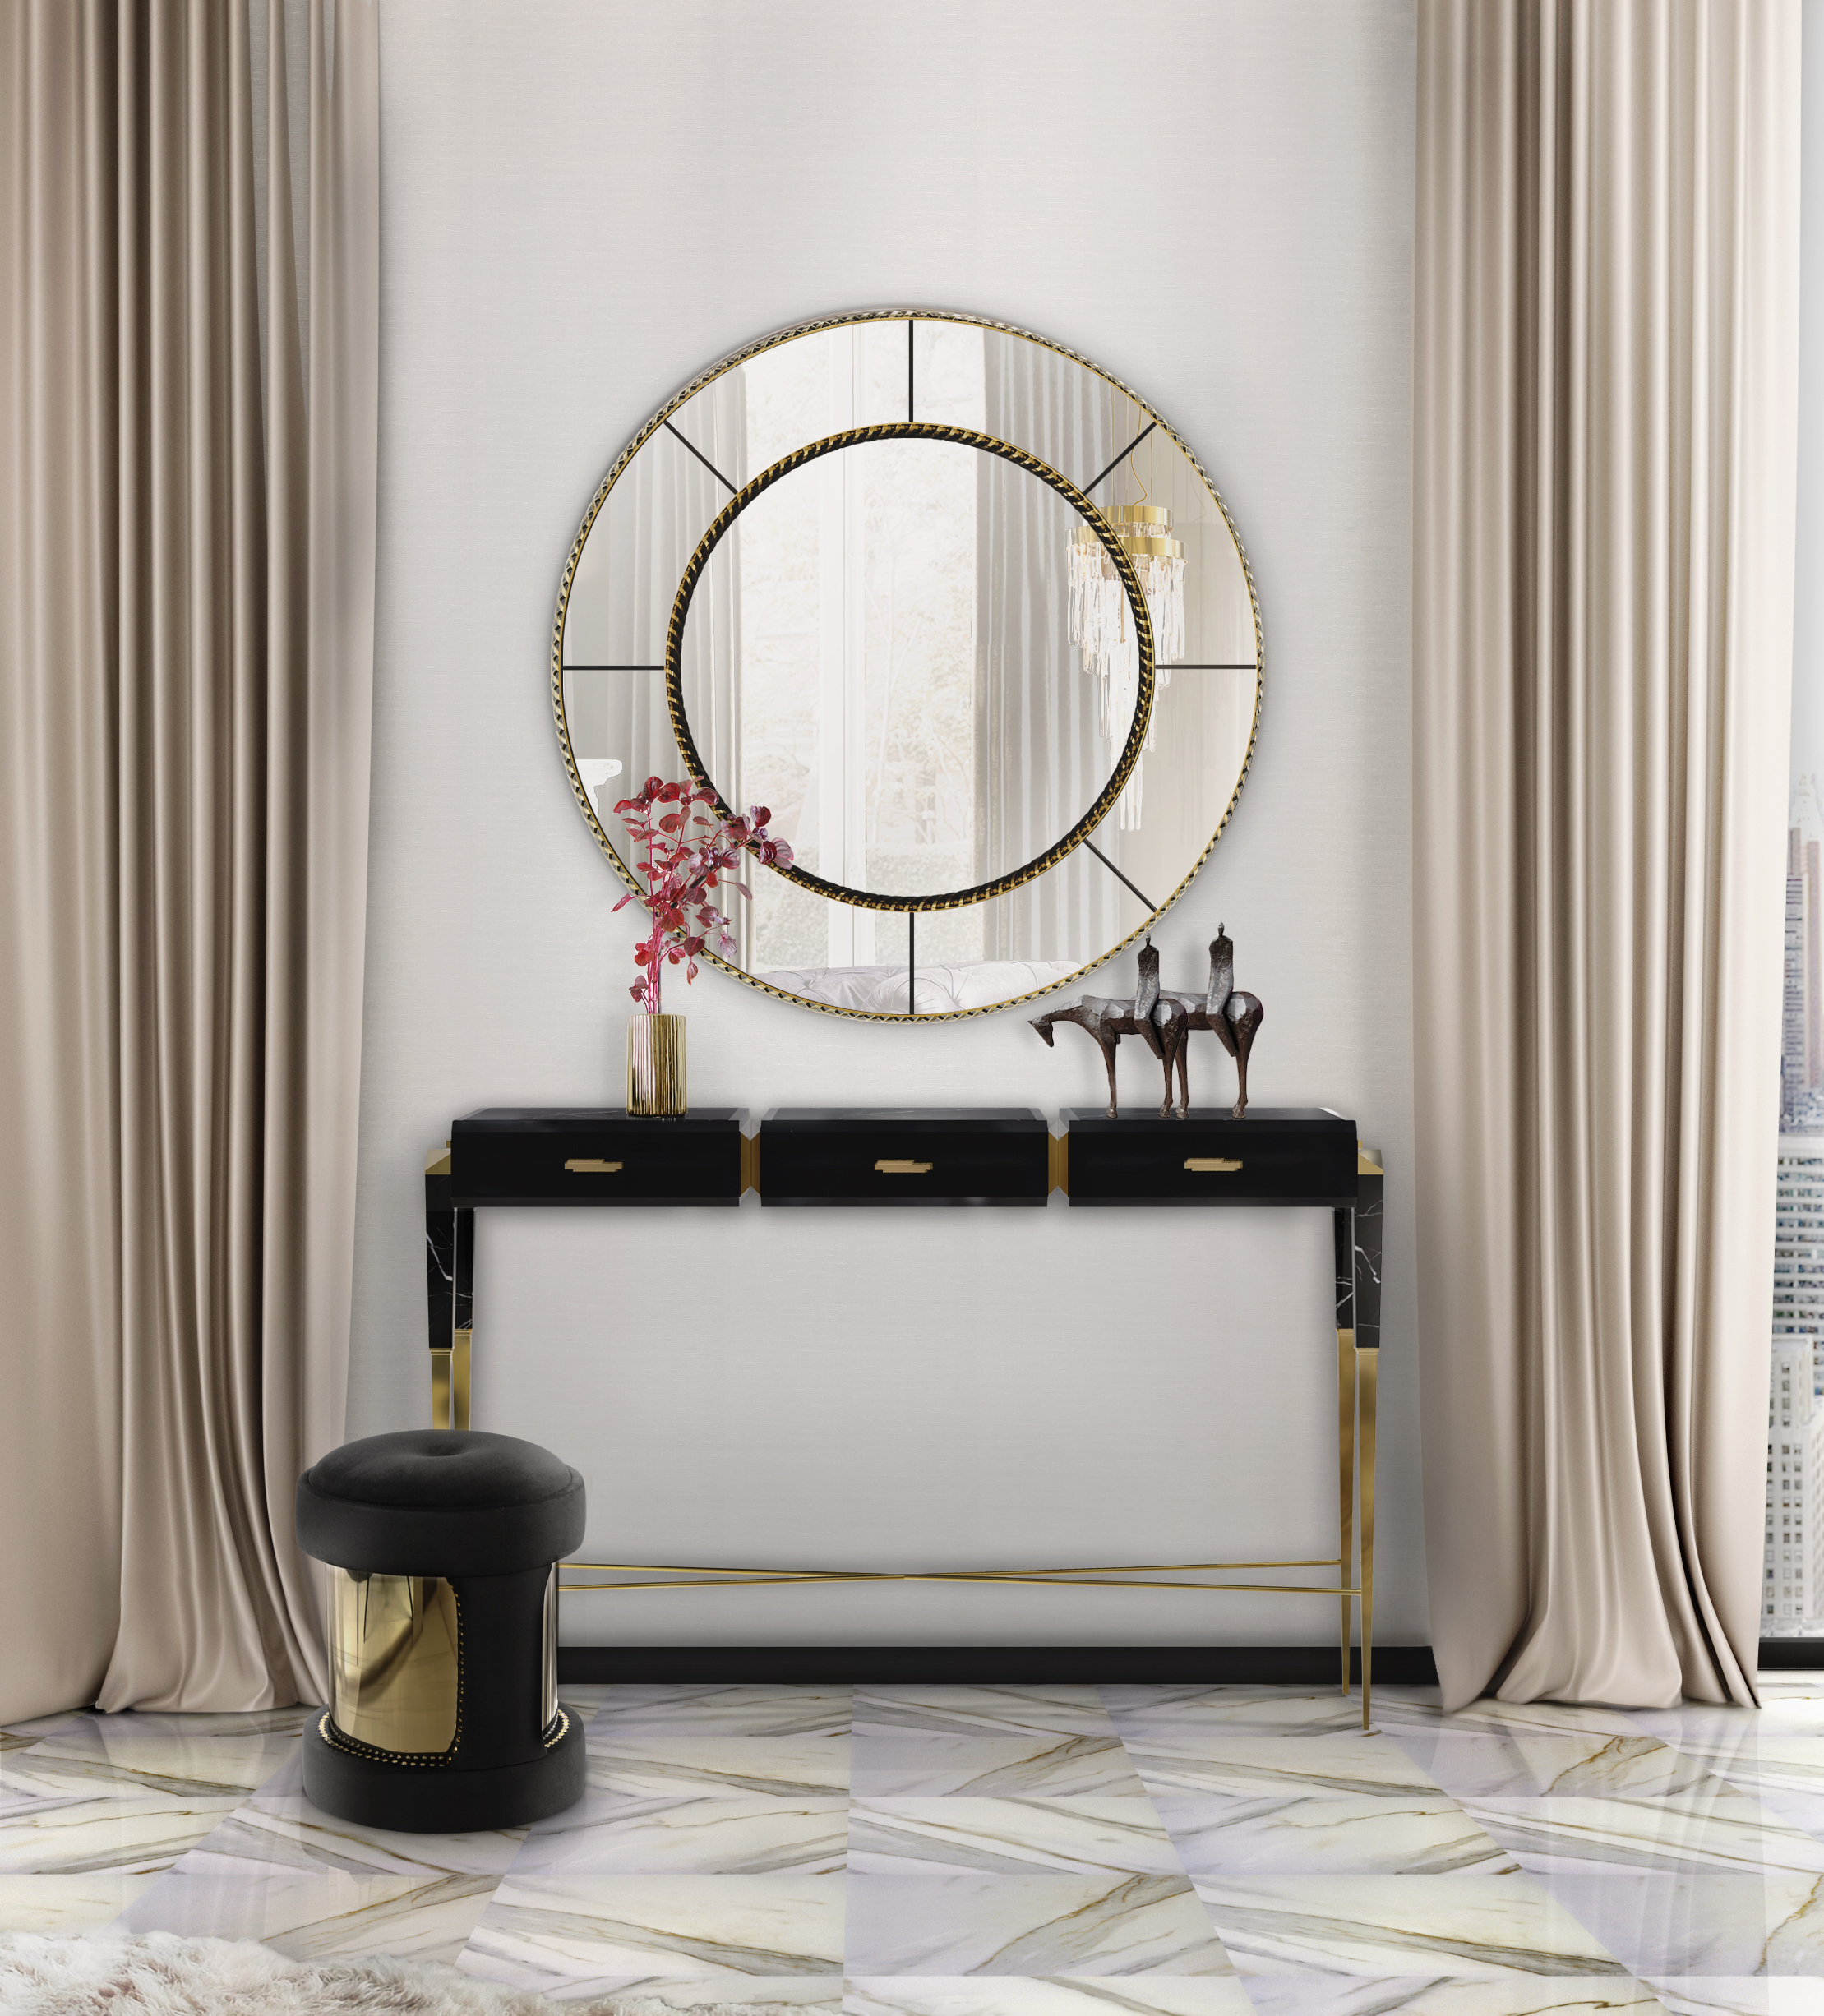 Historically Modern Design Style For Your Projects historically modern design style for your projects Historically Modern Design Style For Your Projects crown mirror cover 01